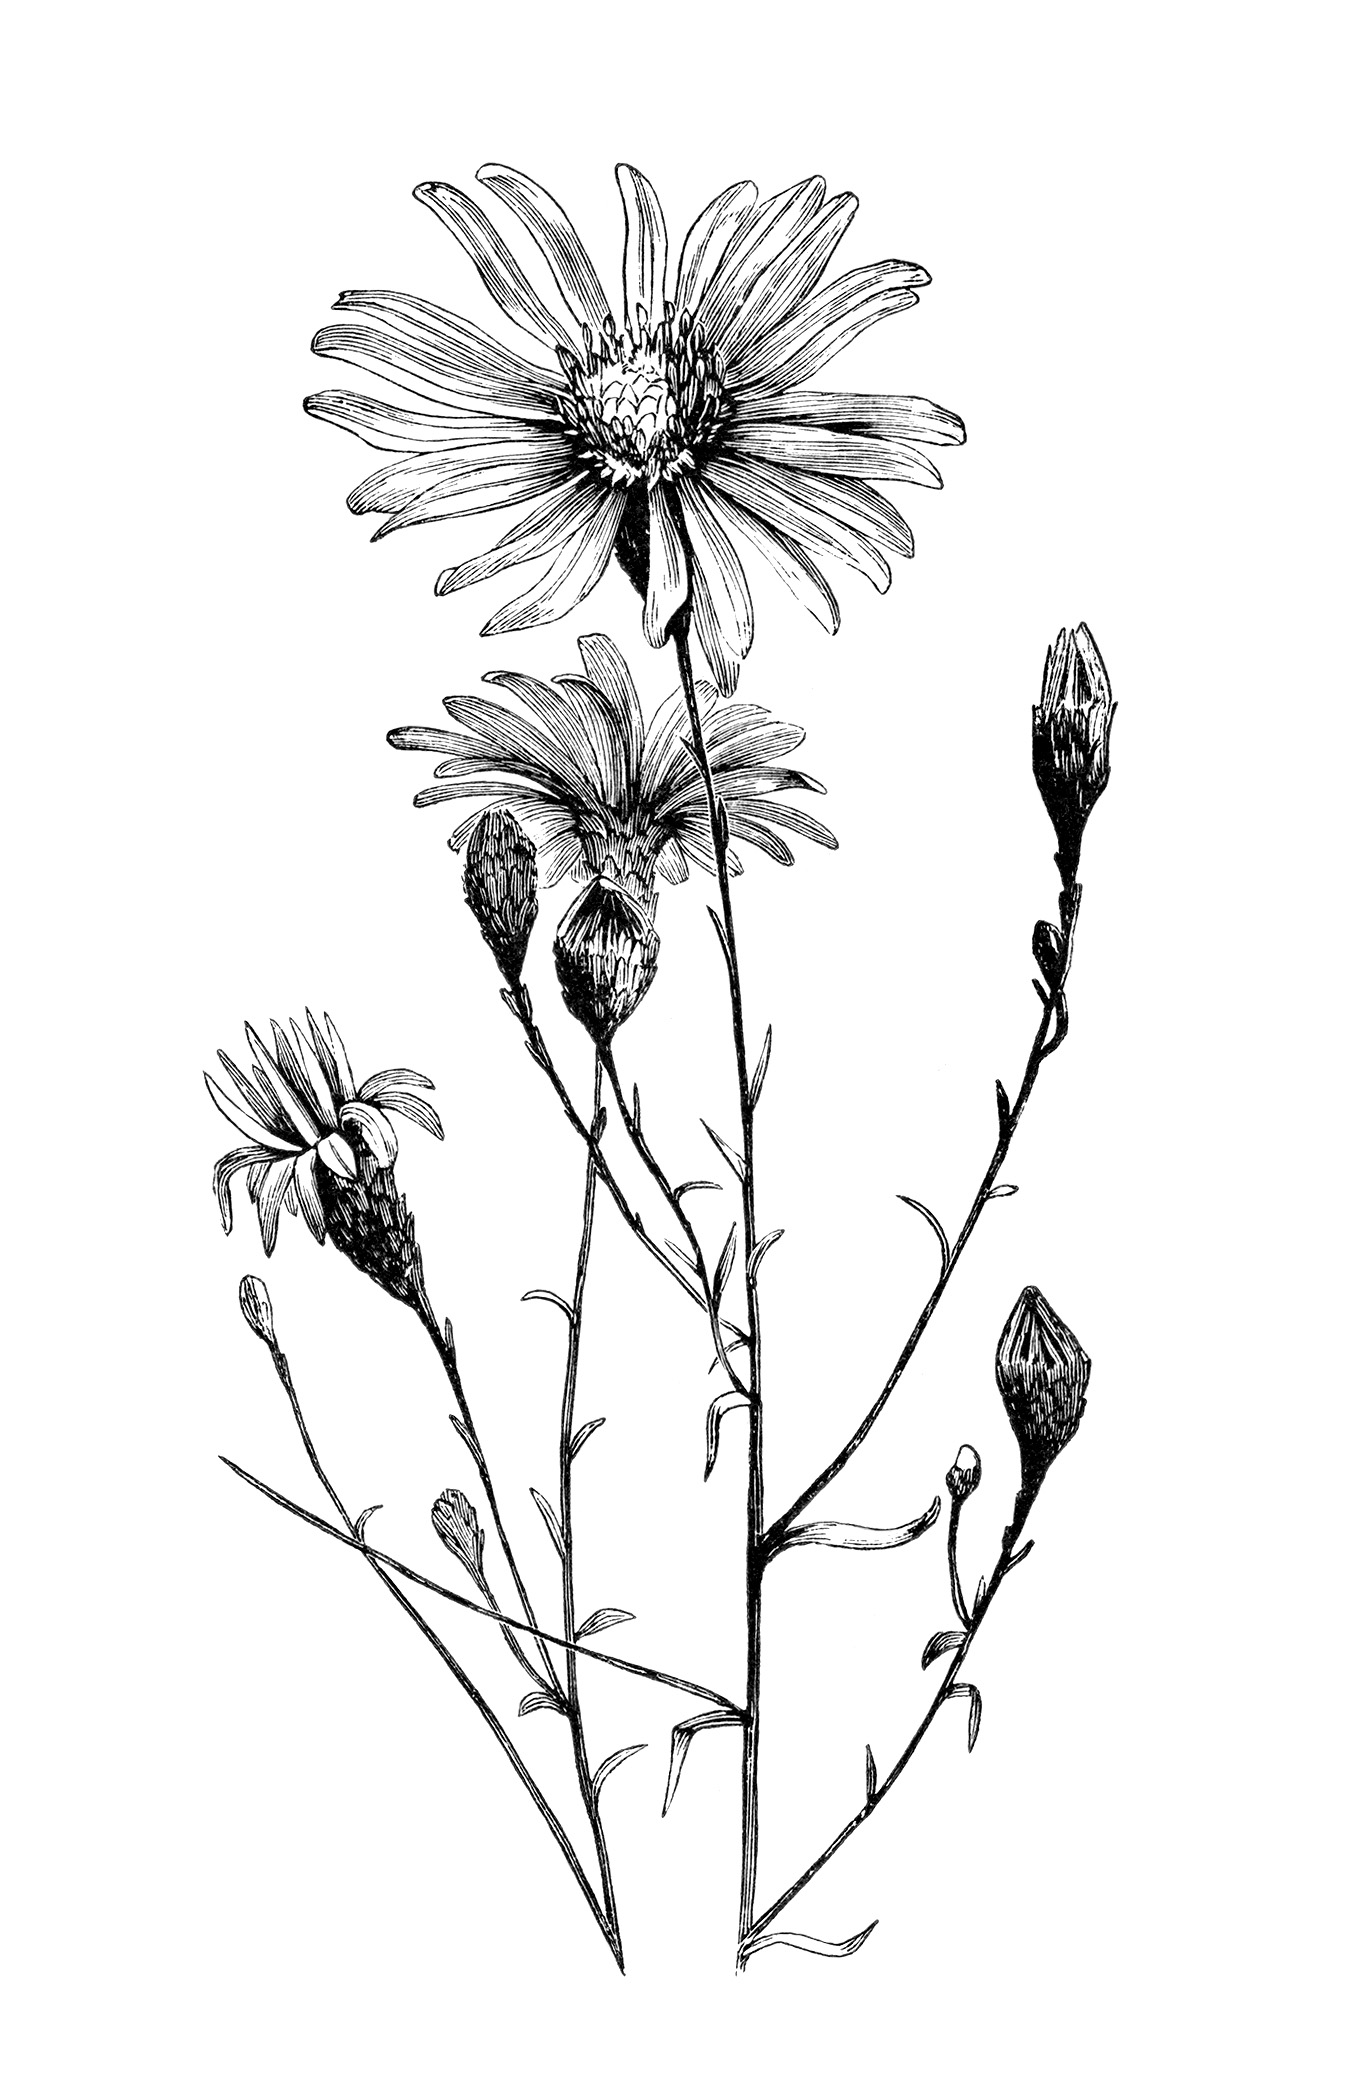 Aster Flower Line Drawing : Aster flower free vintage clip art image old design